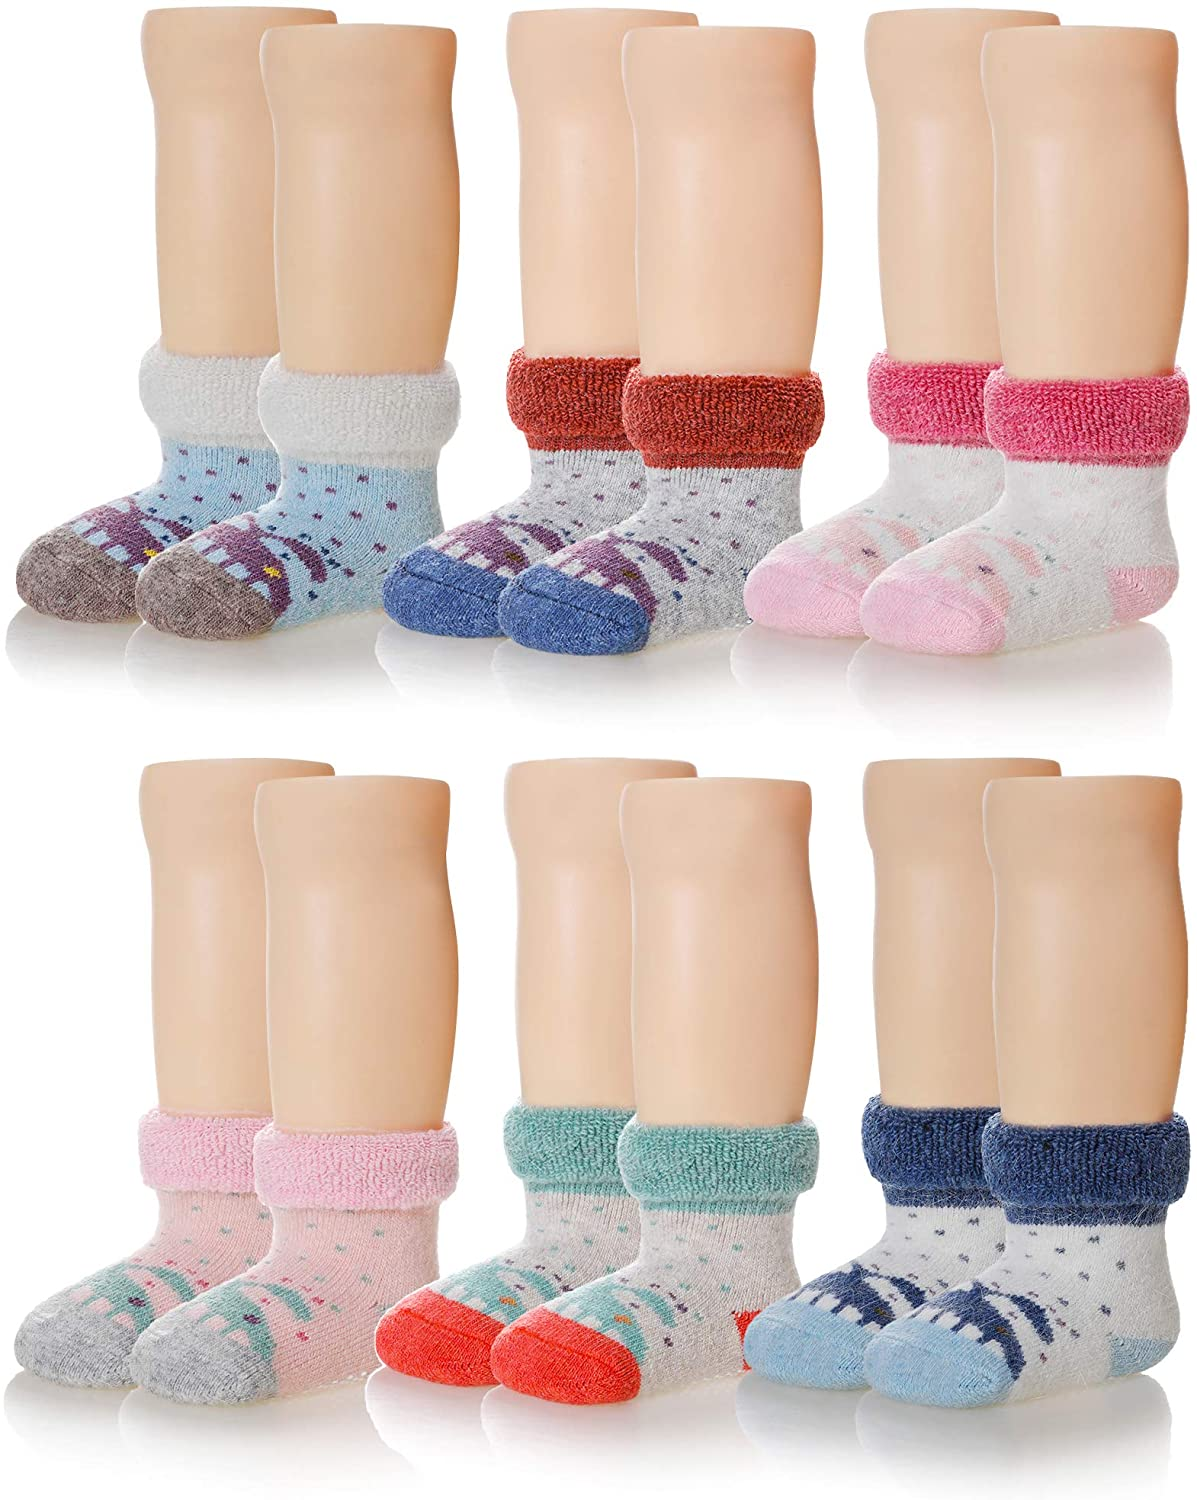 6 Pairs Baby Boy Girl Non Slip Socks Child Toddler Winter Thick Soft Wool Kids Warm Socks with Grips